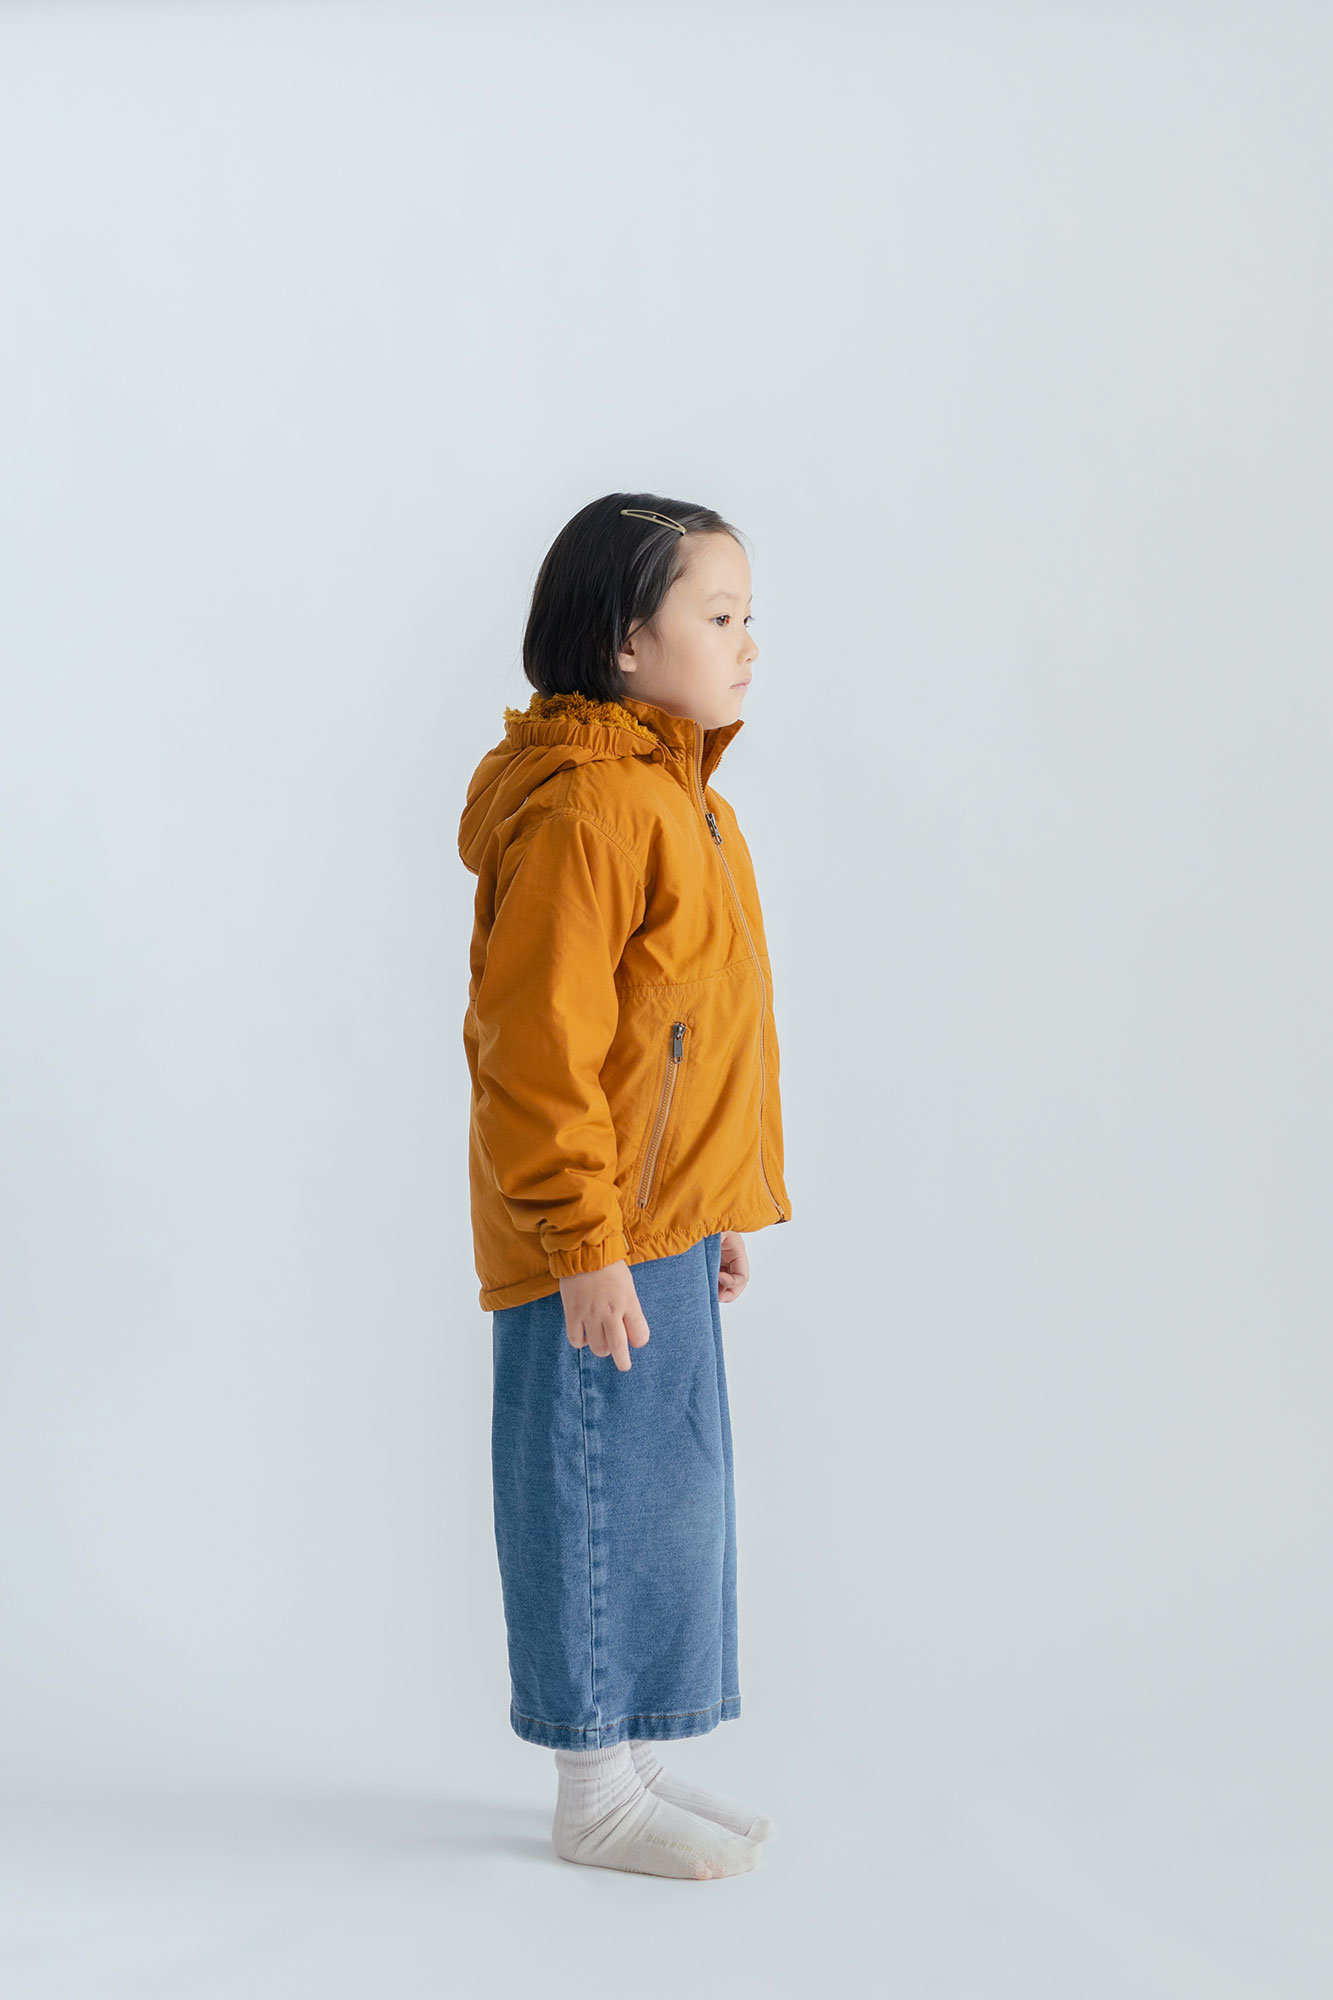 THE NORTH FACE コンパクト ノマド ジャケット キッズ